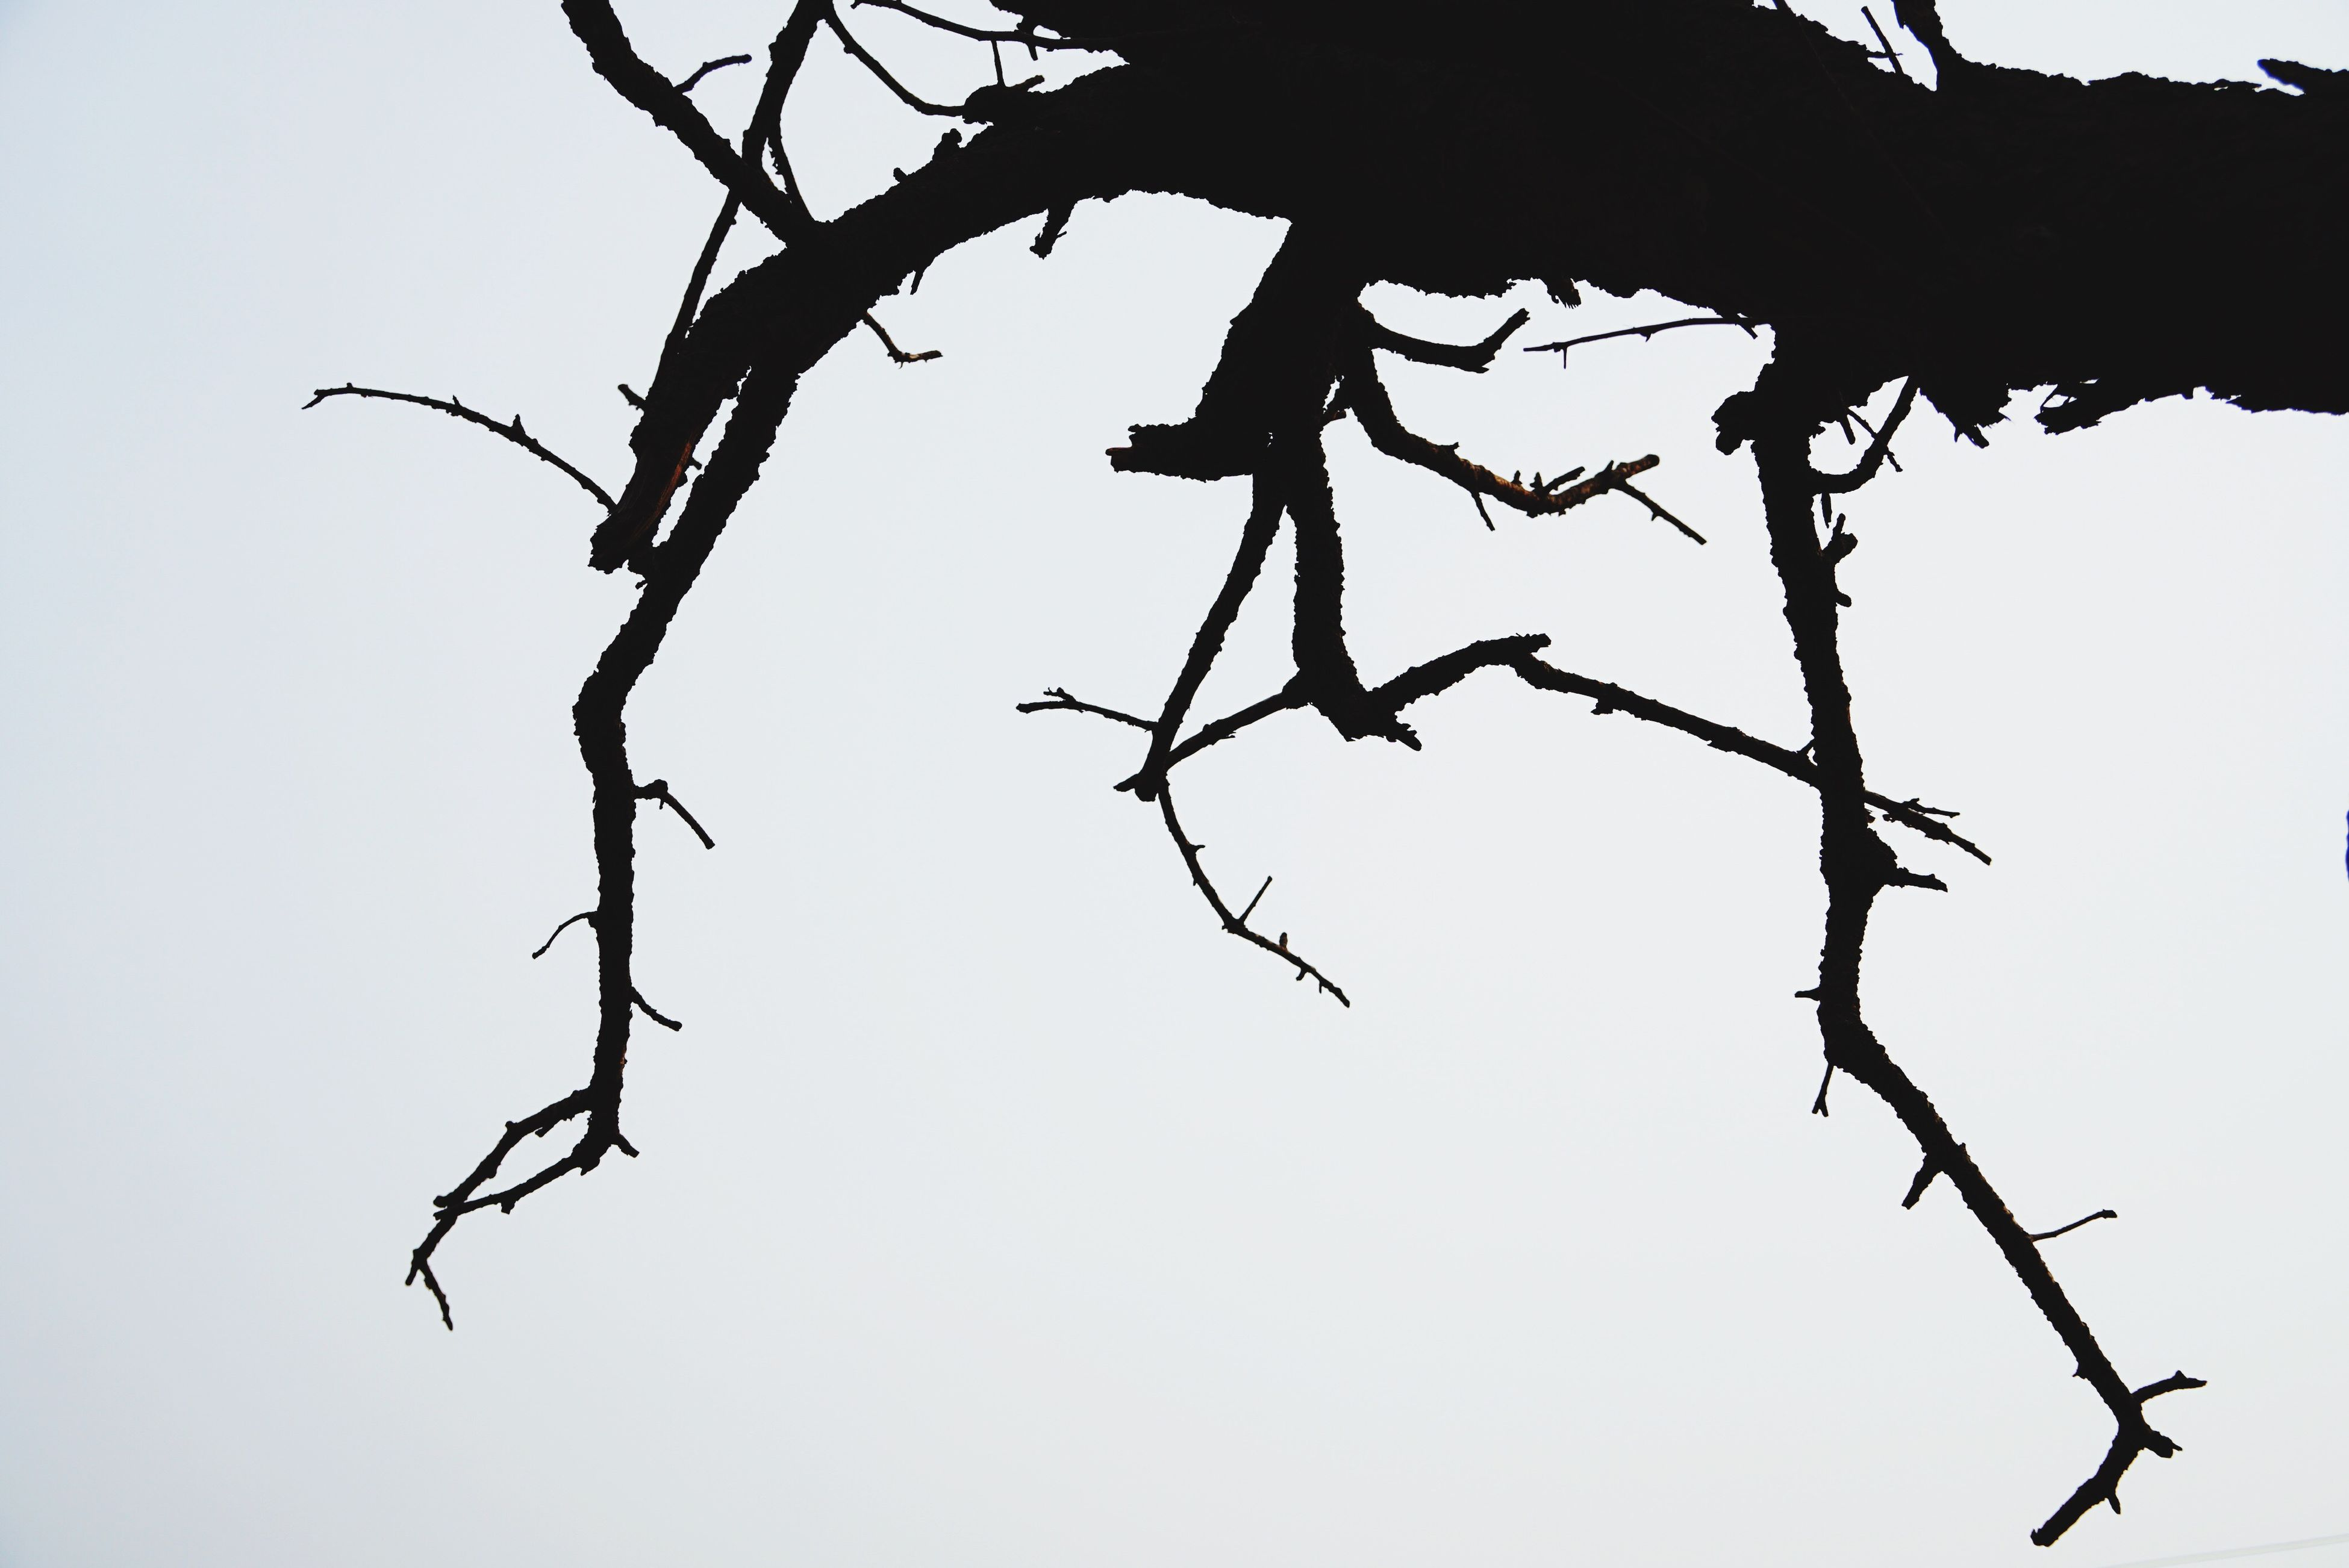 low angle view, nature, no people, branch, tree, outdoors, sky, twig, silhouette, fragility, beauty in nature, day, close-up